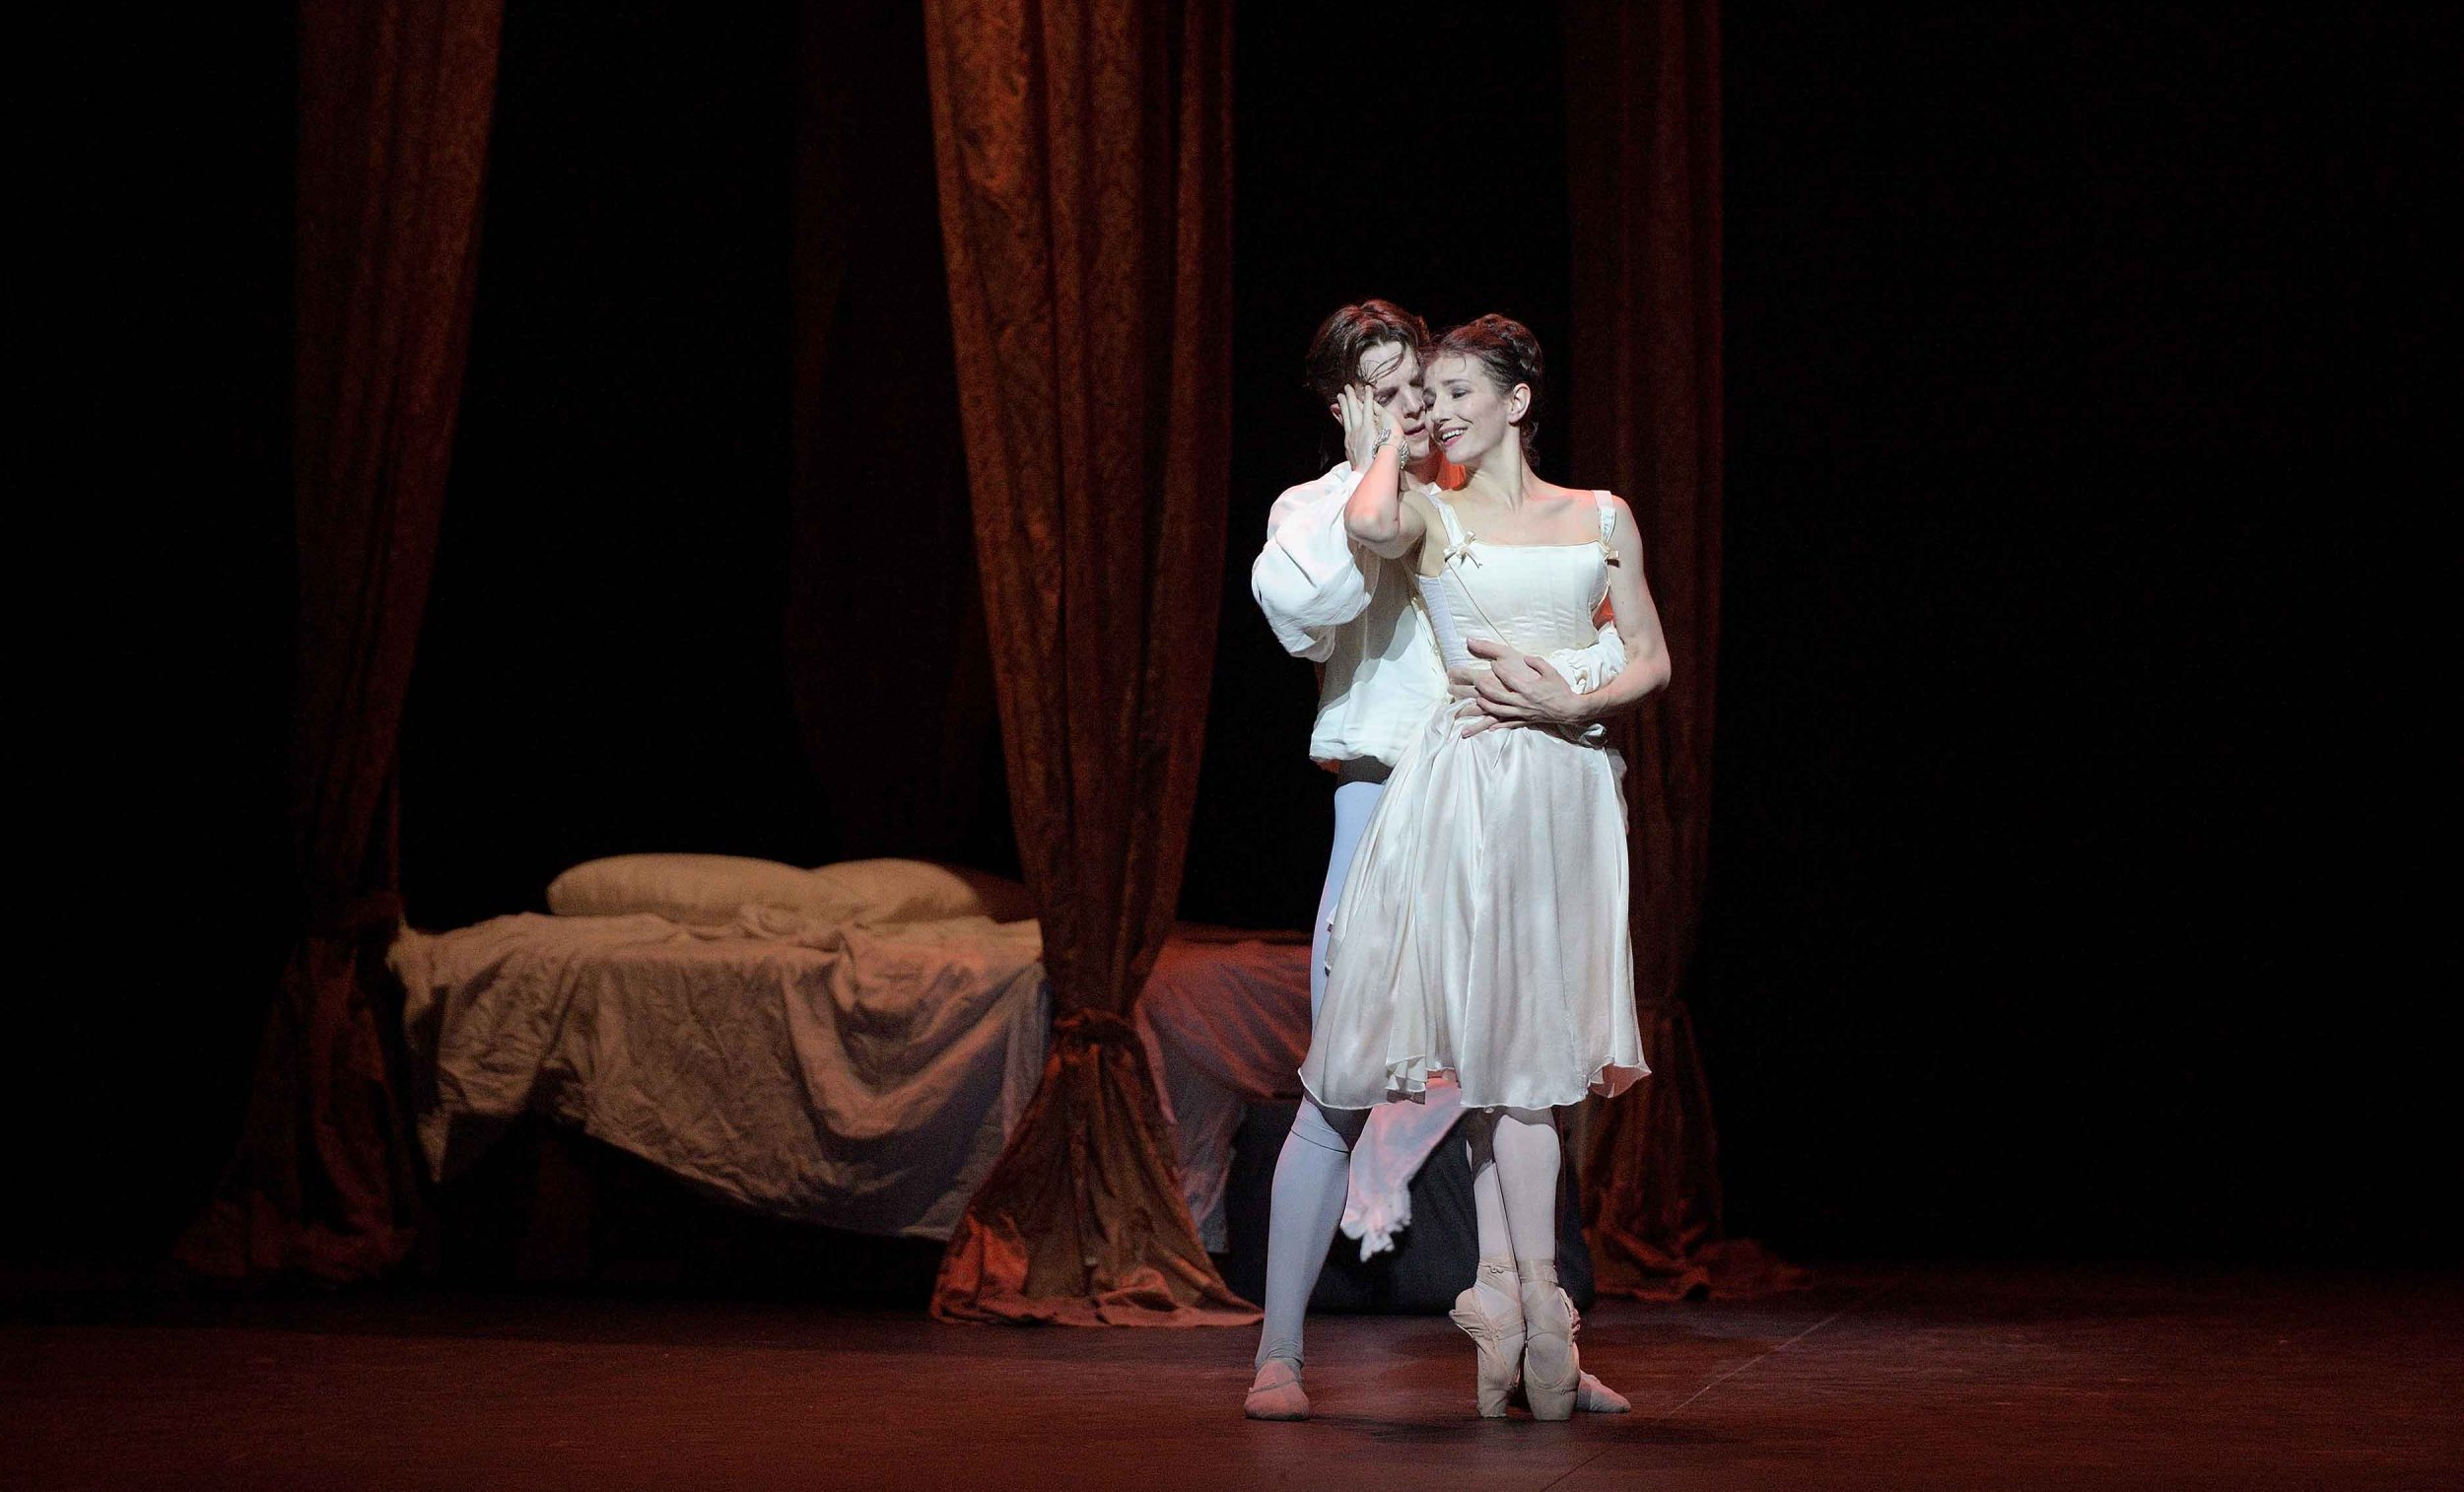 Alina-Cojocaru-and-Joseph-Caley-in-Manon-(c)-Laurent-Liotardo_WEB